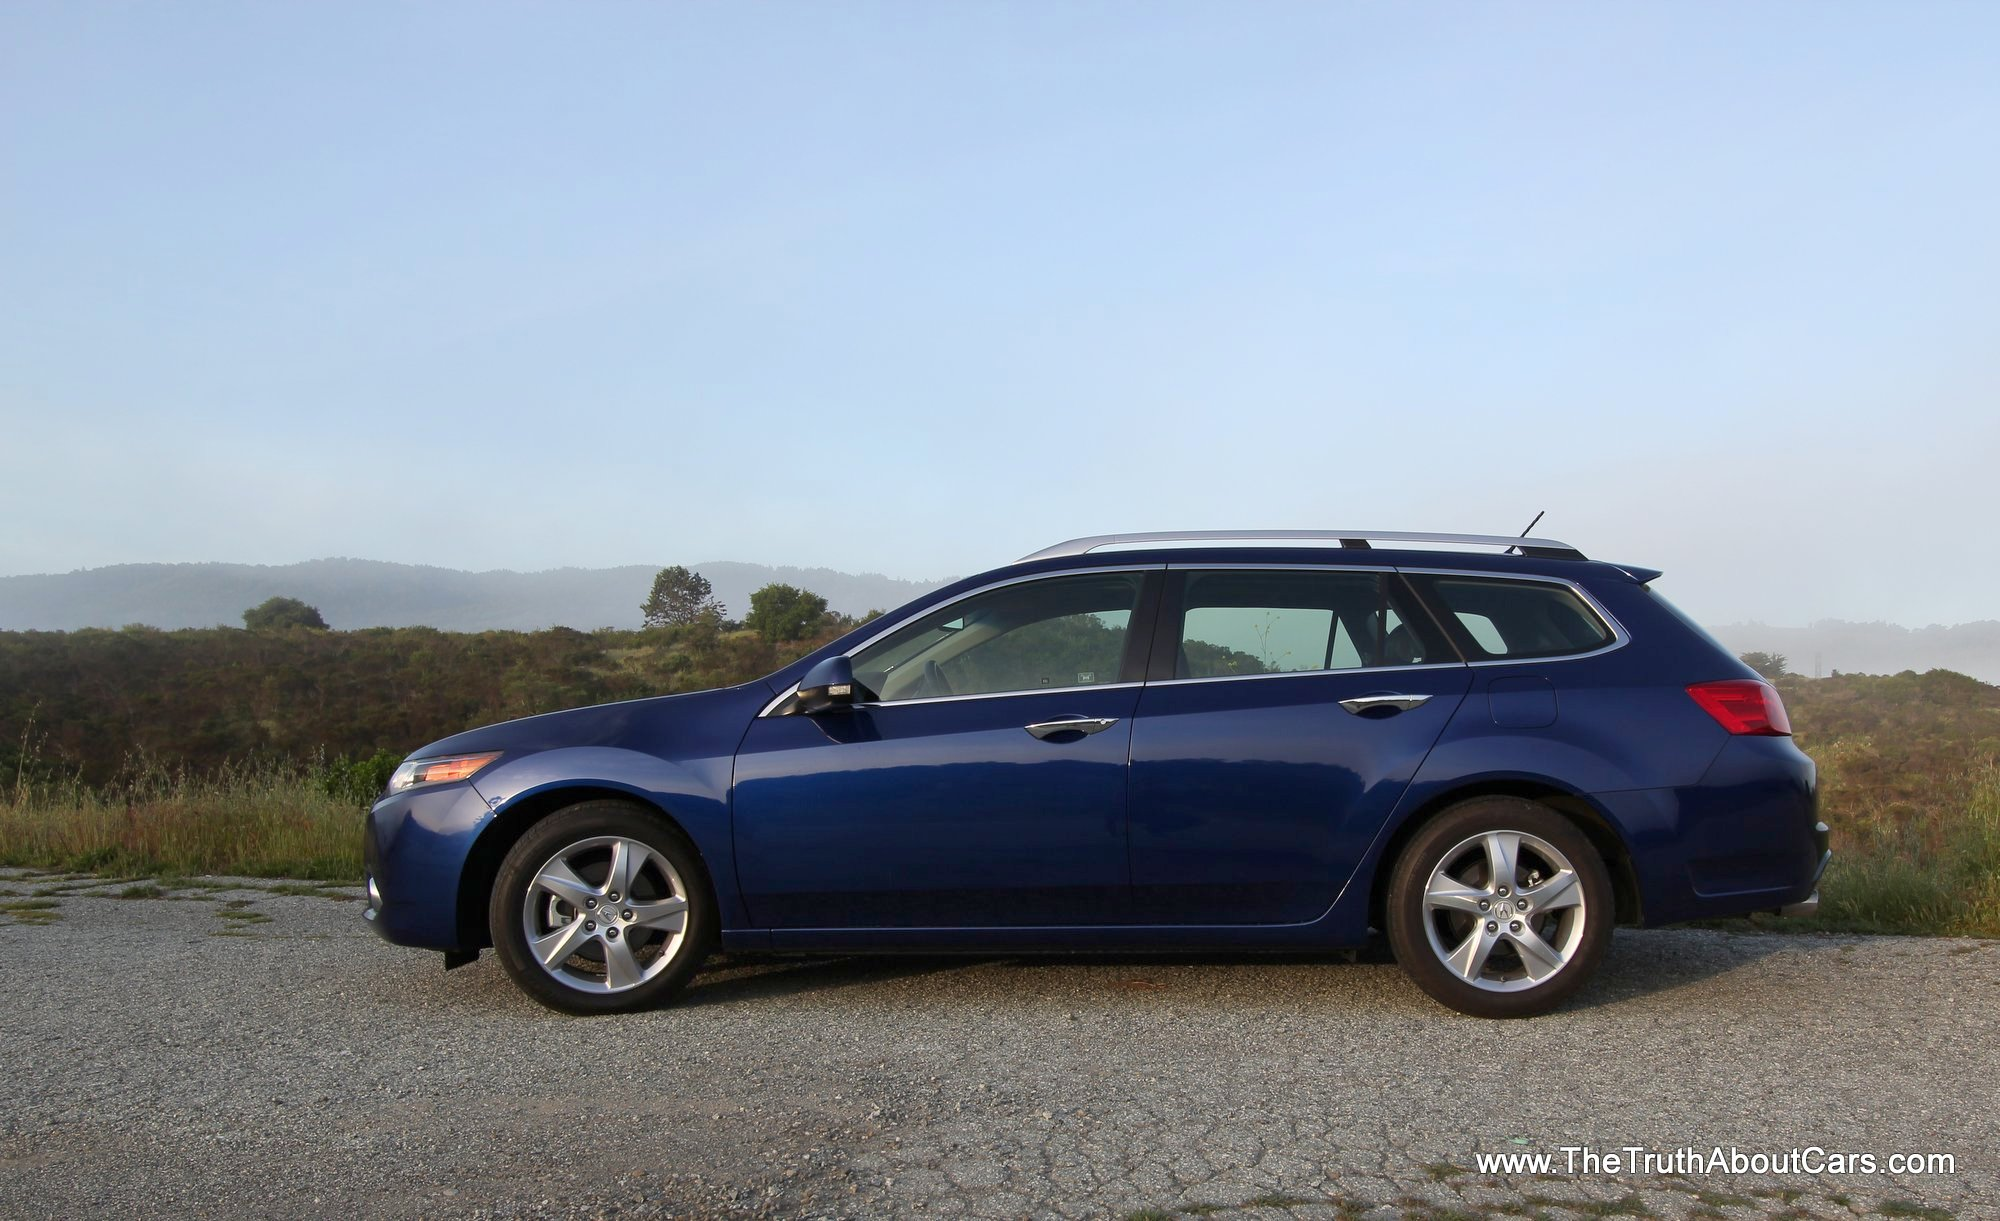 Review: 2012 Acura TSX Sport Wagon - The Truth About Cars